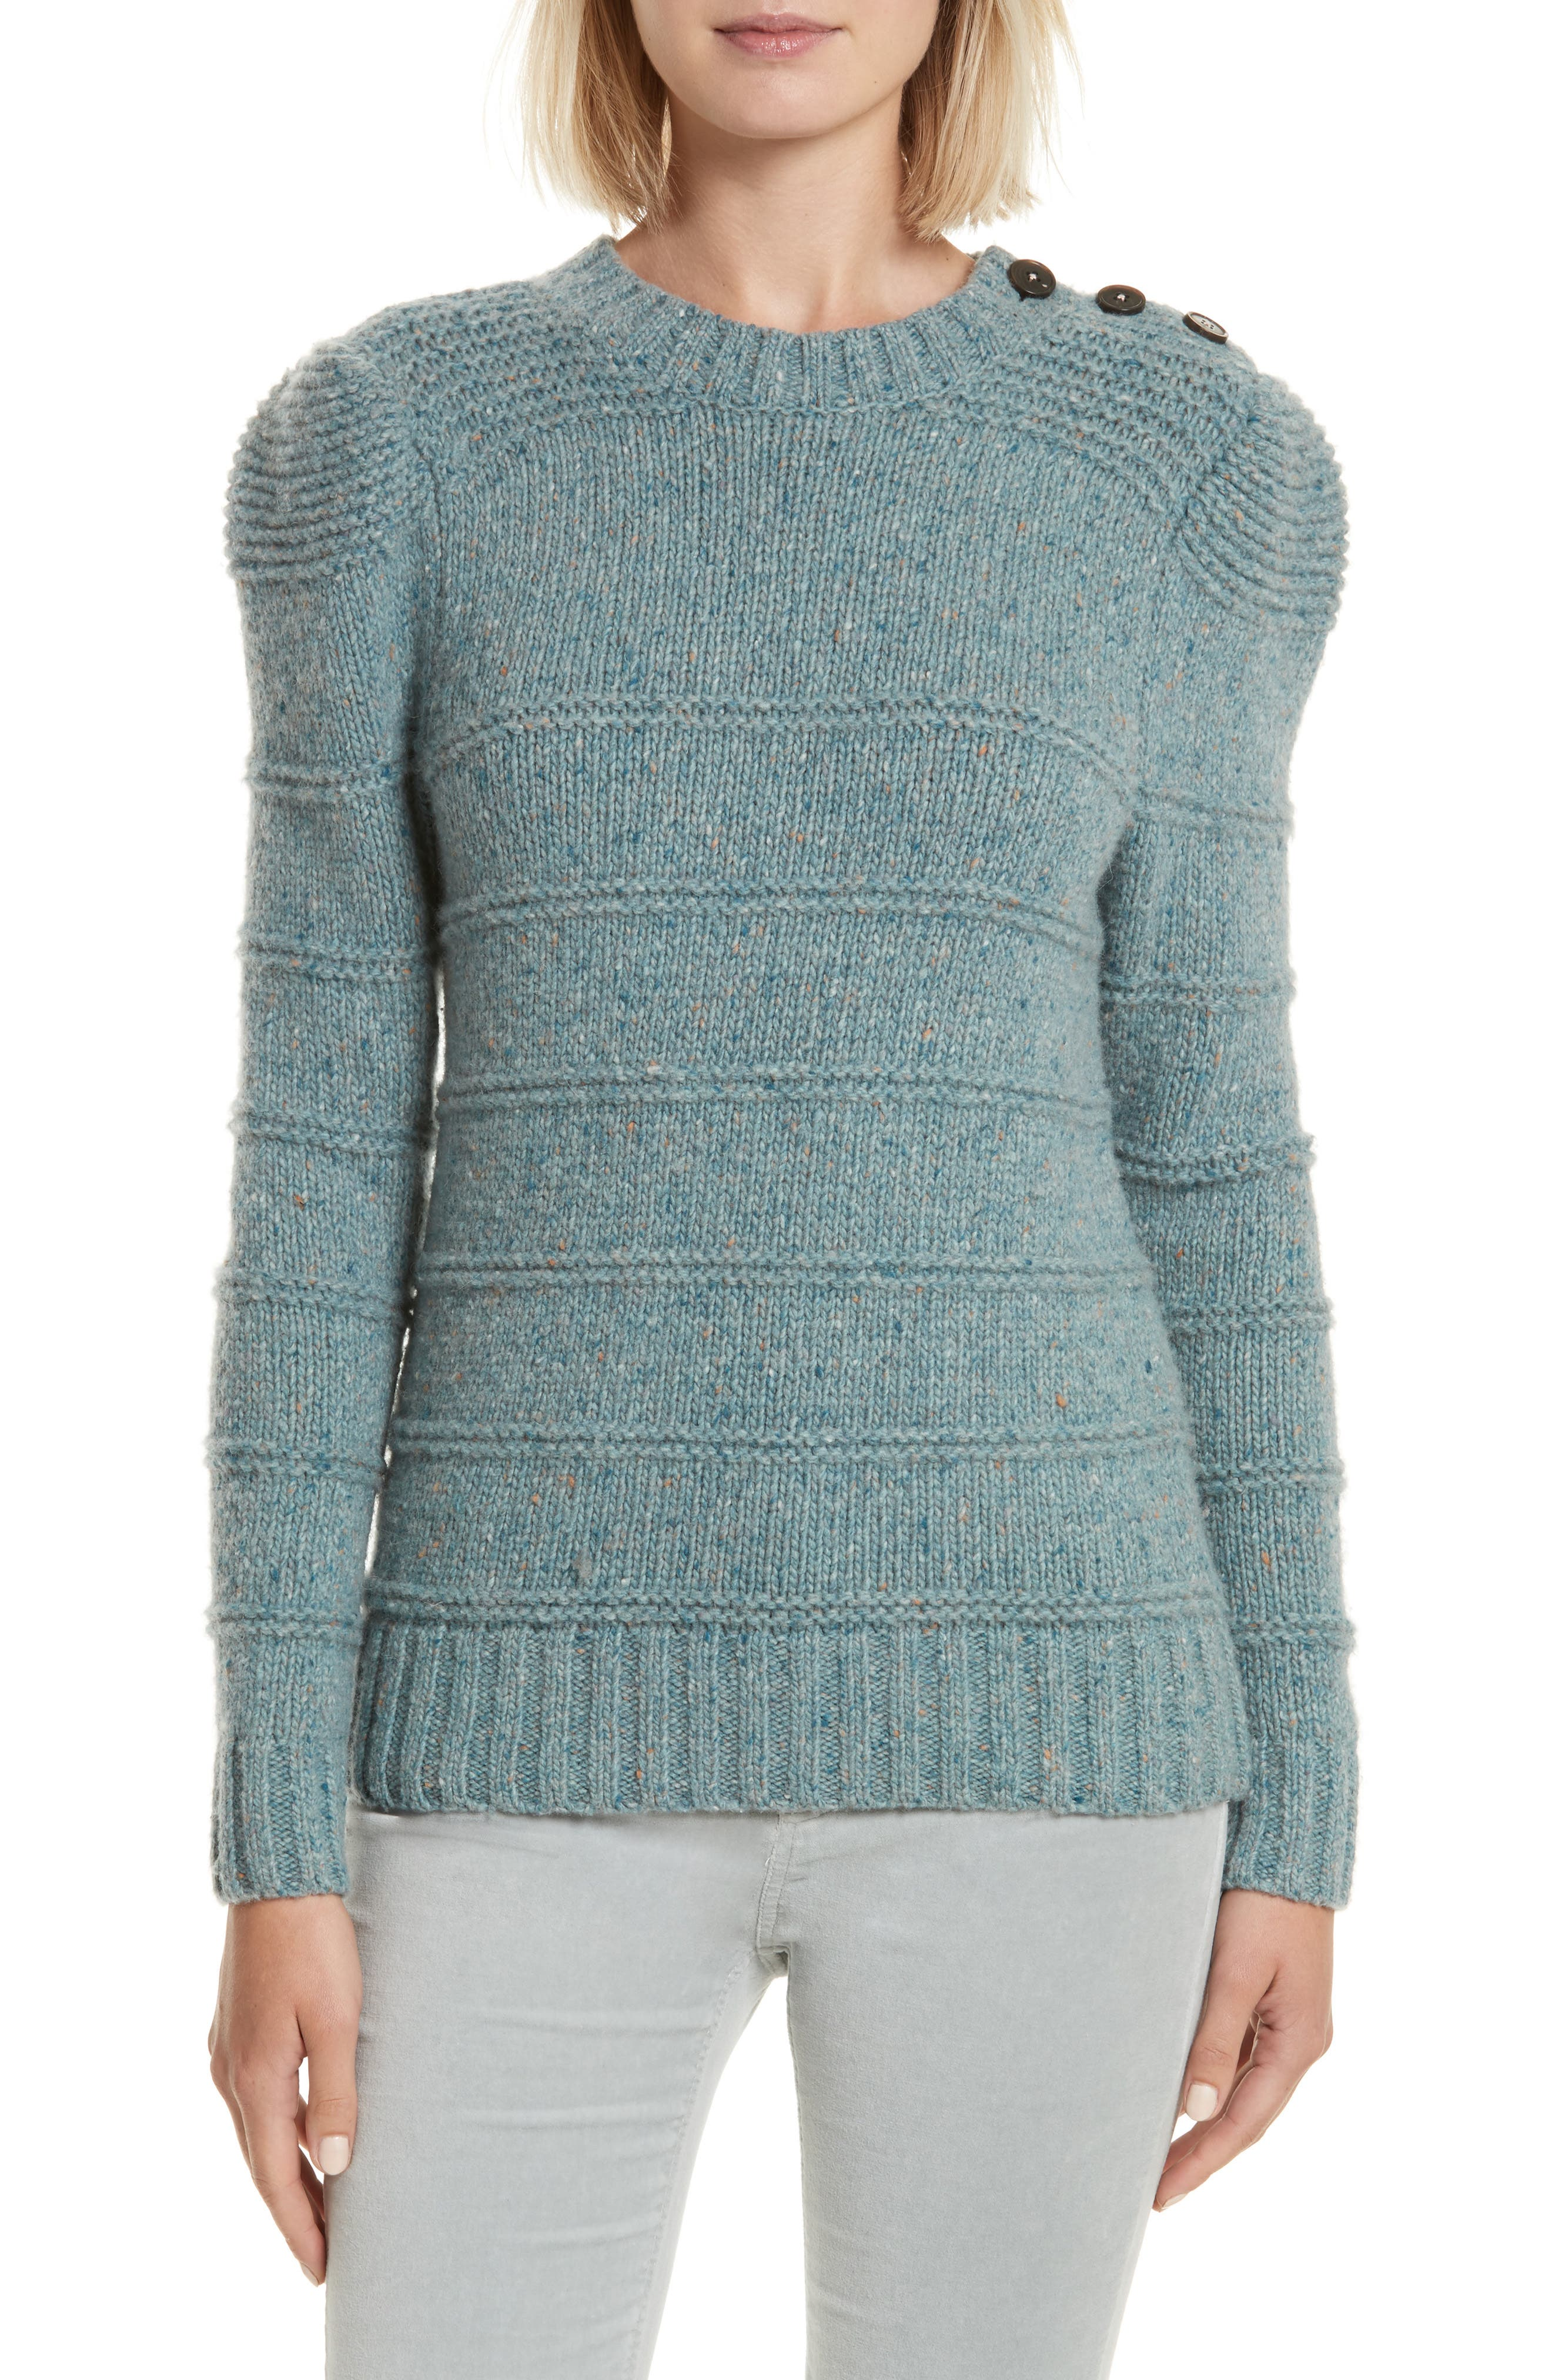 Donegal Tweed Pullover,                         Main,                         color, Sea Mist